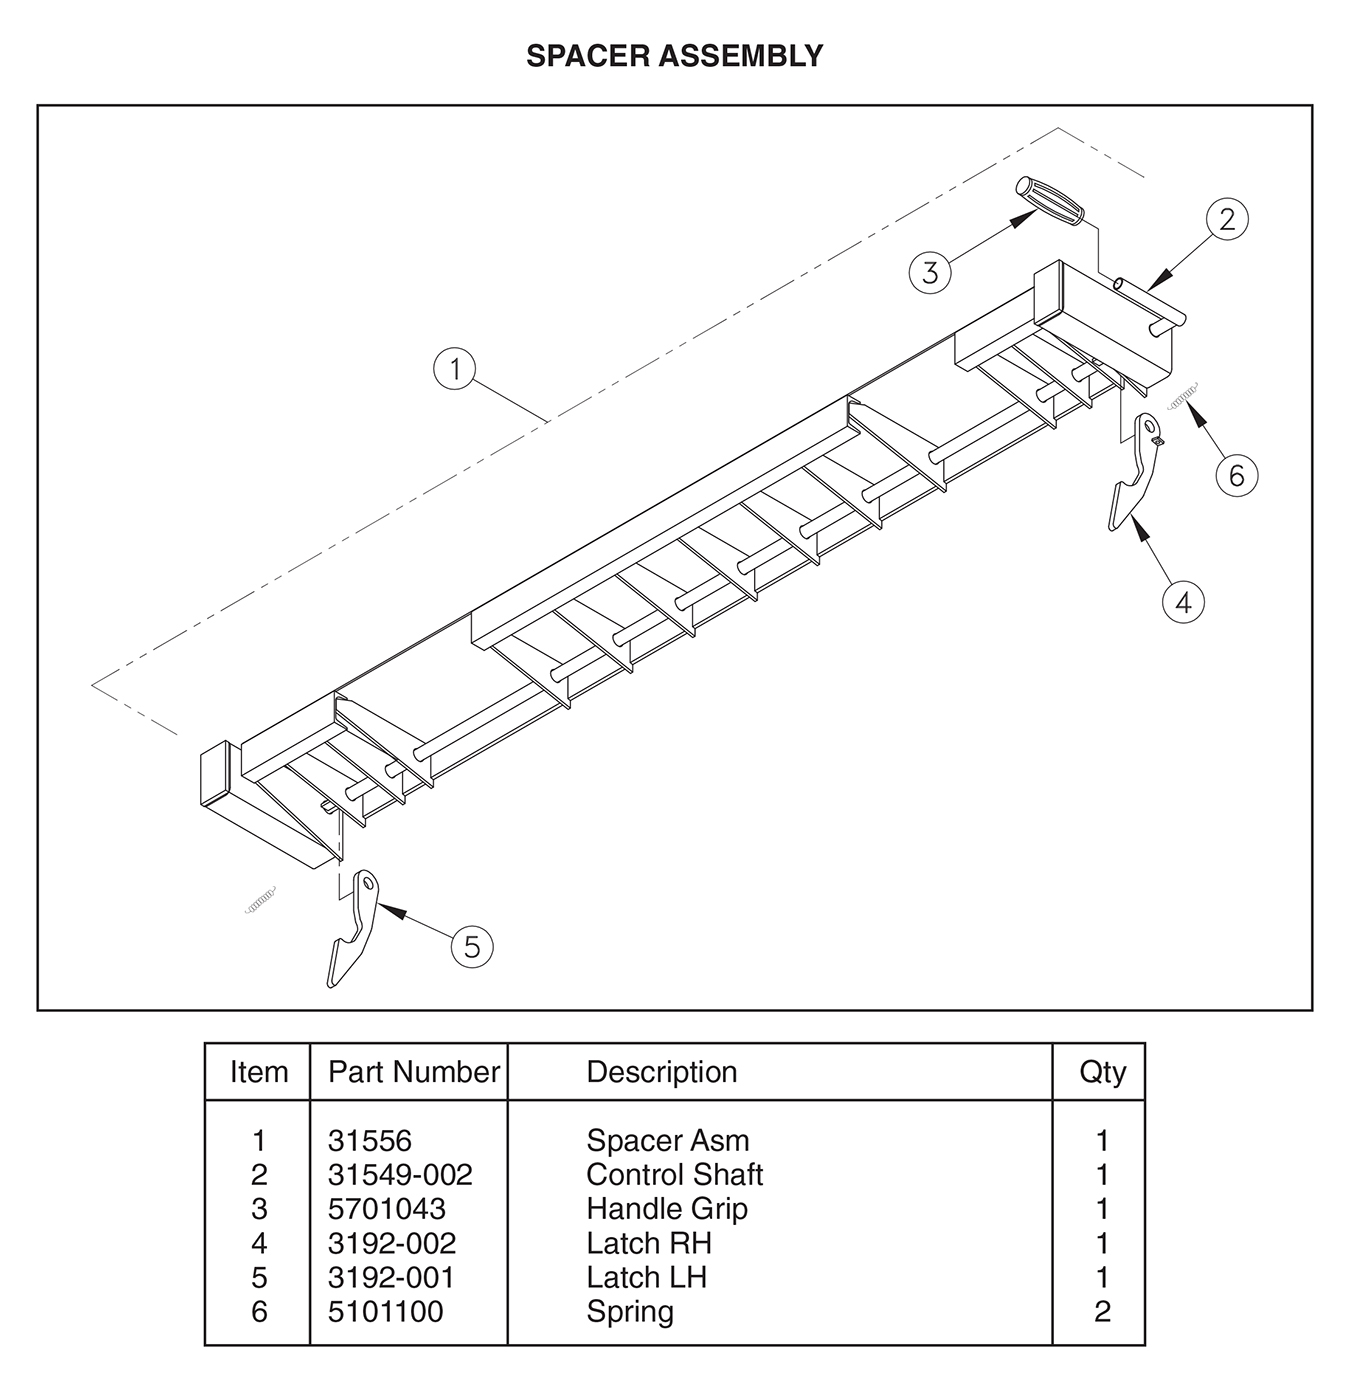 ST 22/31 Spacer Assembly Diagram